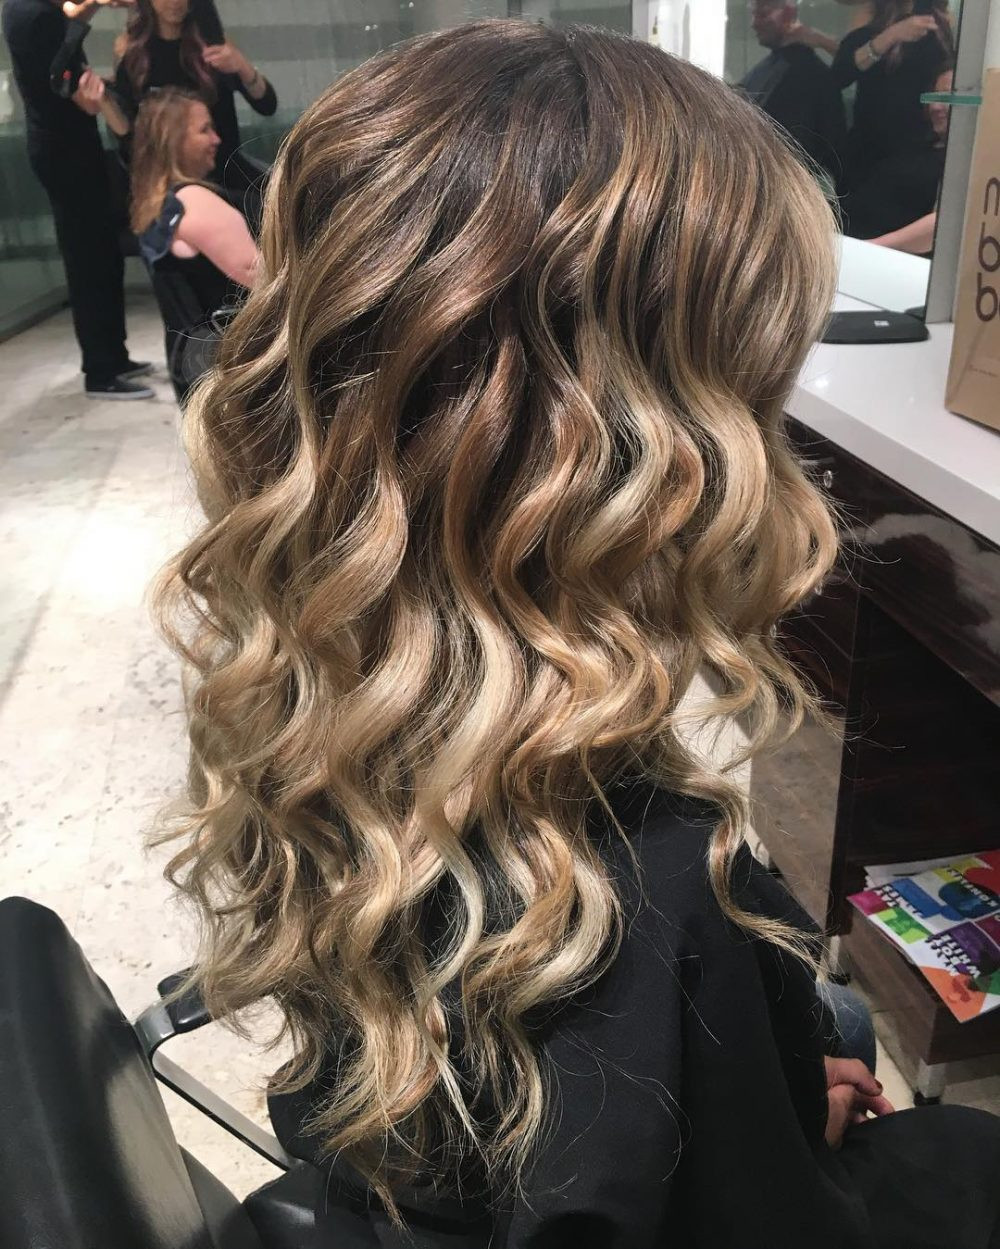 Best ideas about Prom Hairstyles Curly Down . Save or Pin 18 Stunning Curly Prom Hairstyles for 2019 Updos Down Now.